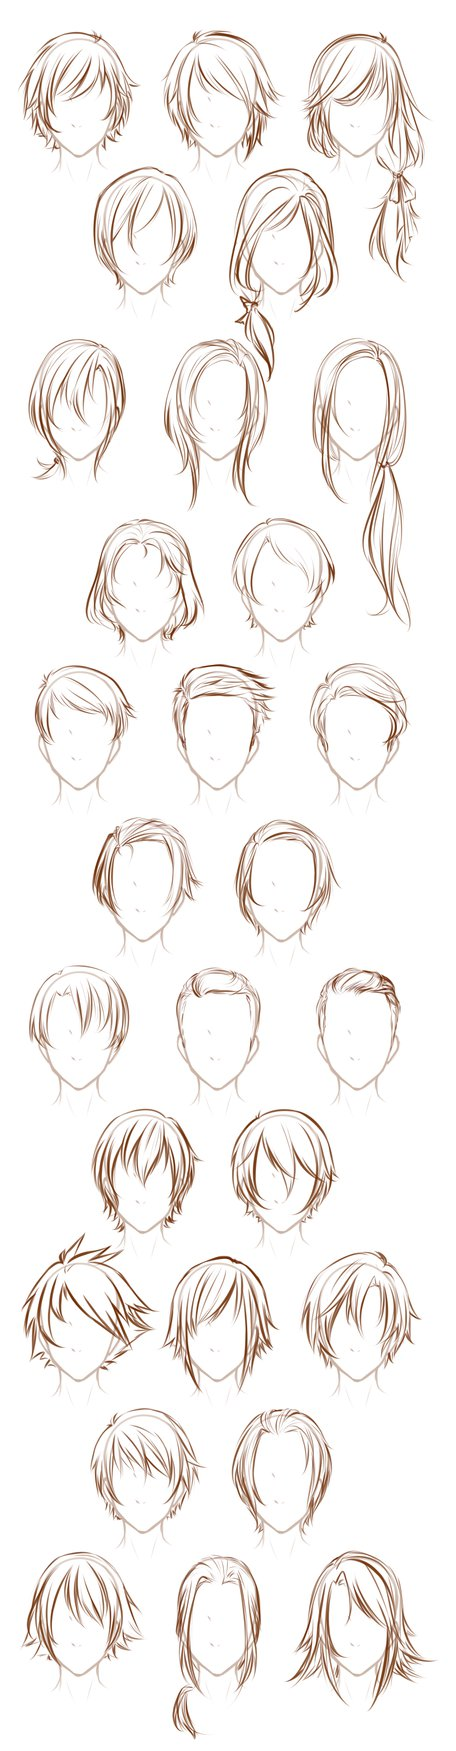 After sketching that sheet of Male Poses I decided to sketch out some of my male o